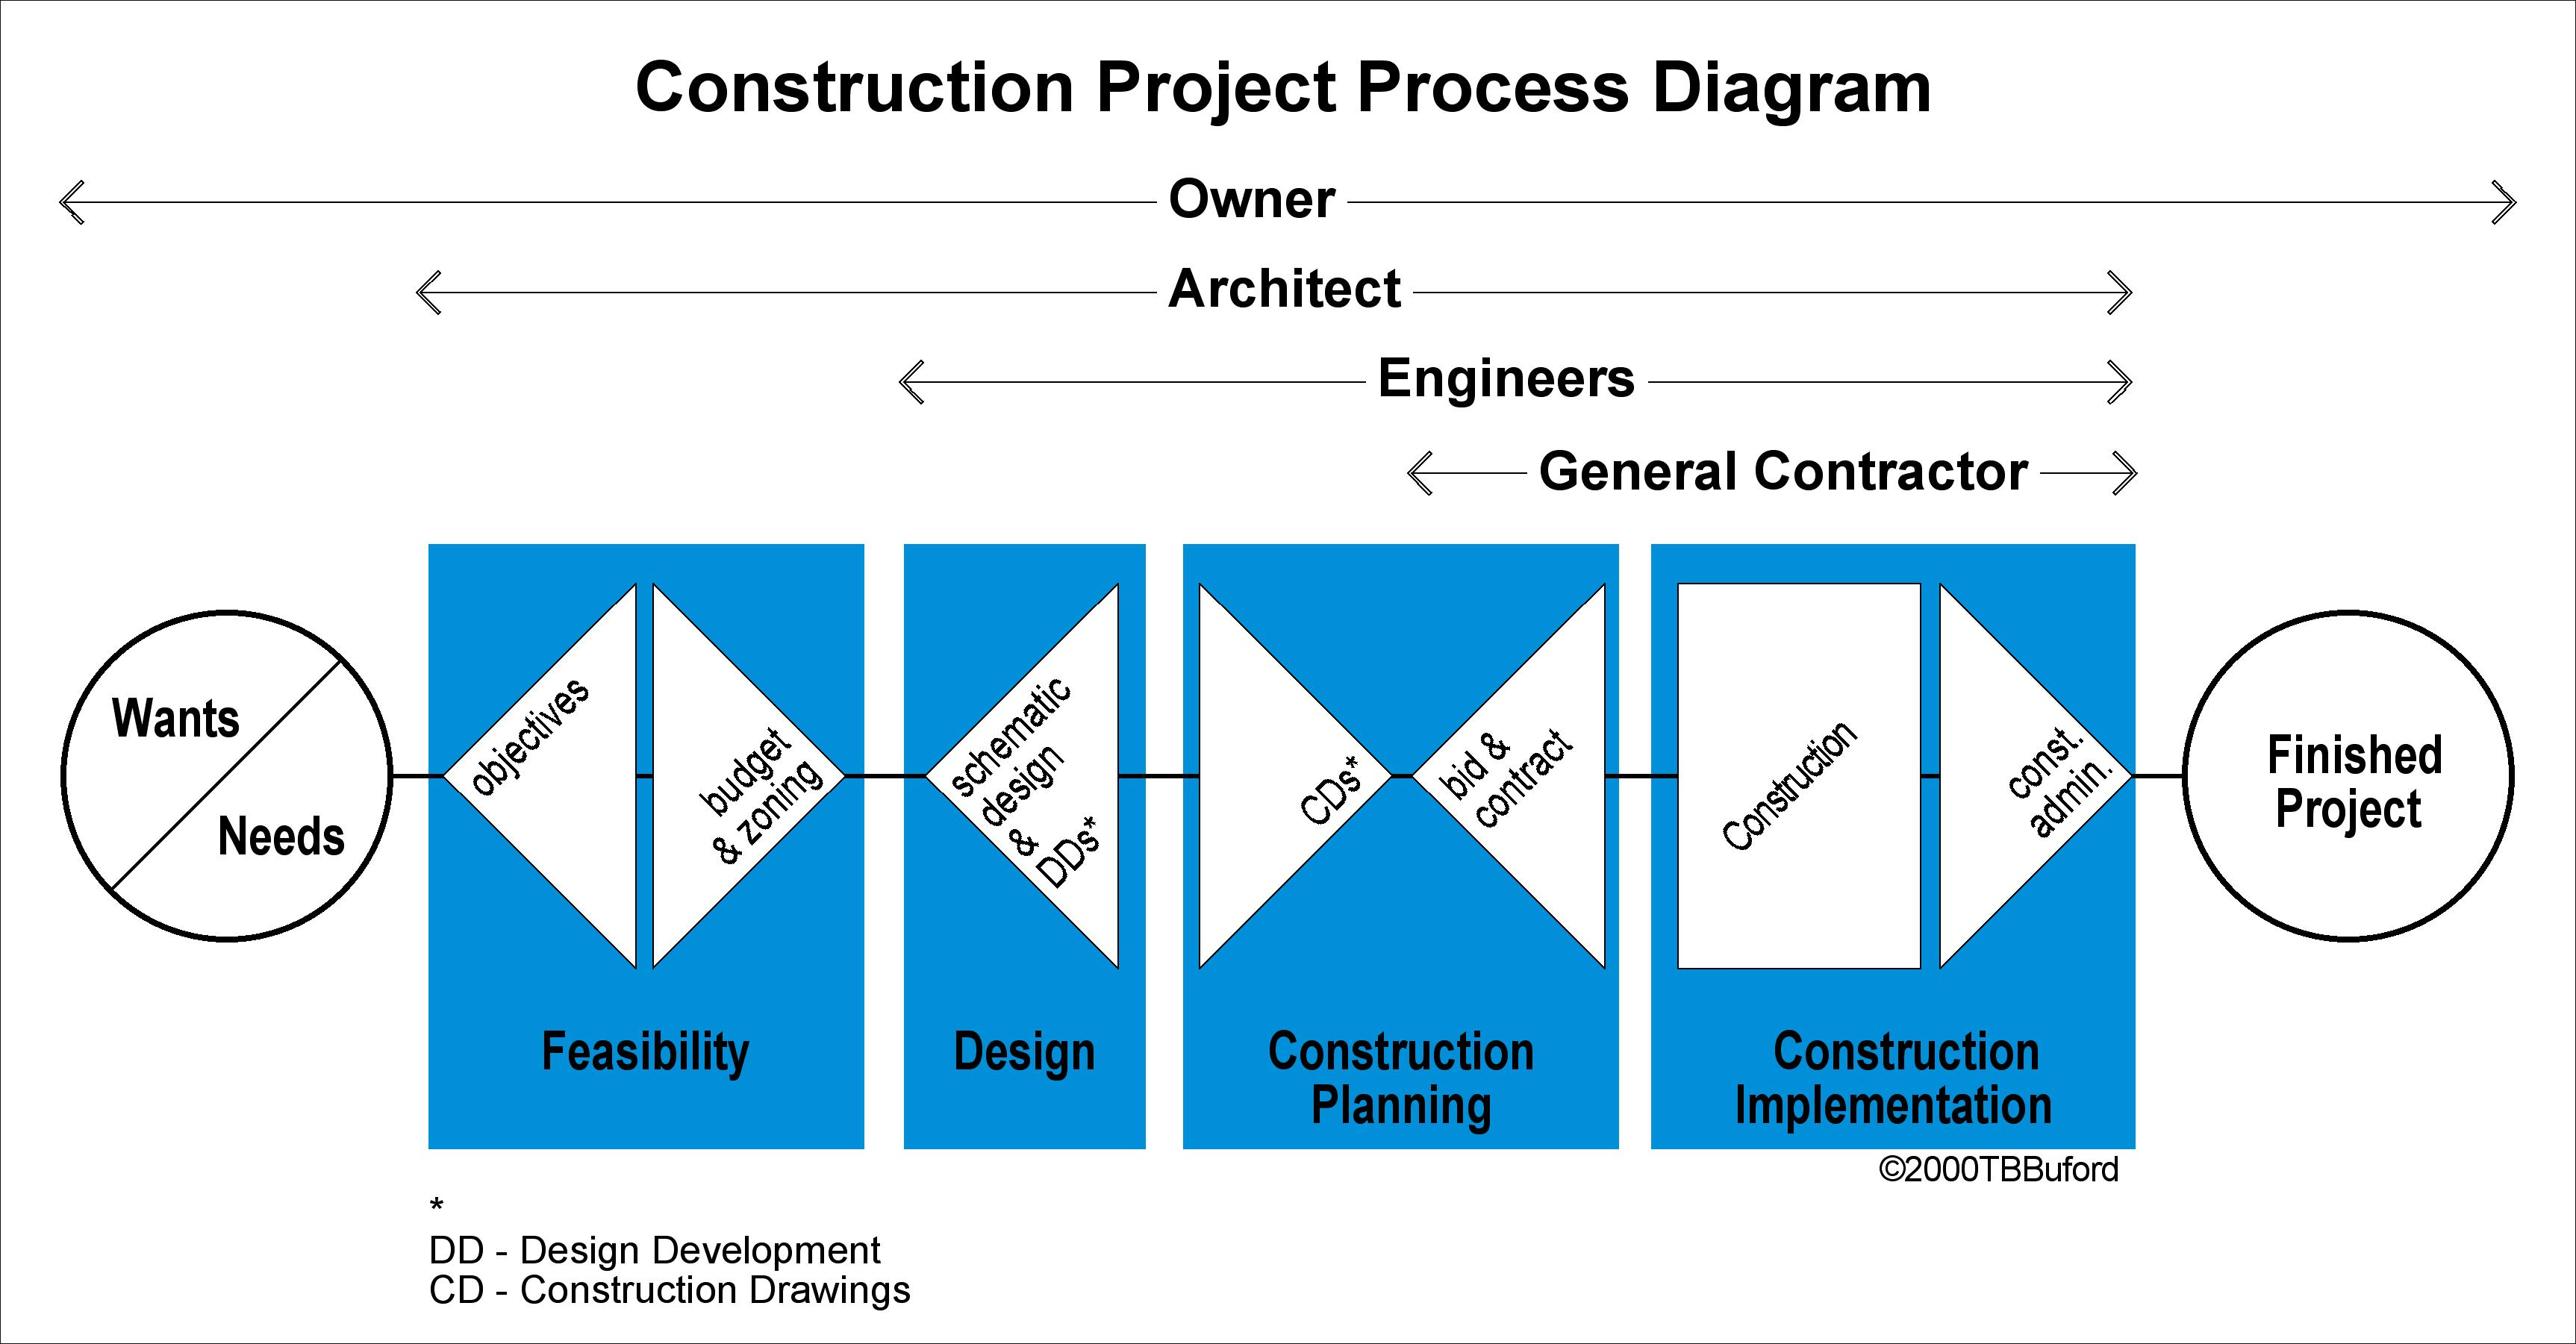 Tbbuford Itect In Arlington Va. How Construction Project Works. Wiring. General Construction Diagram At Scoala.co